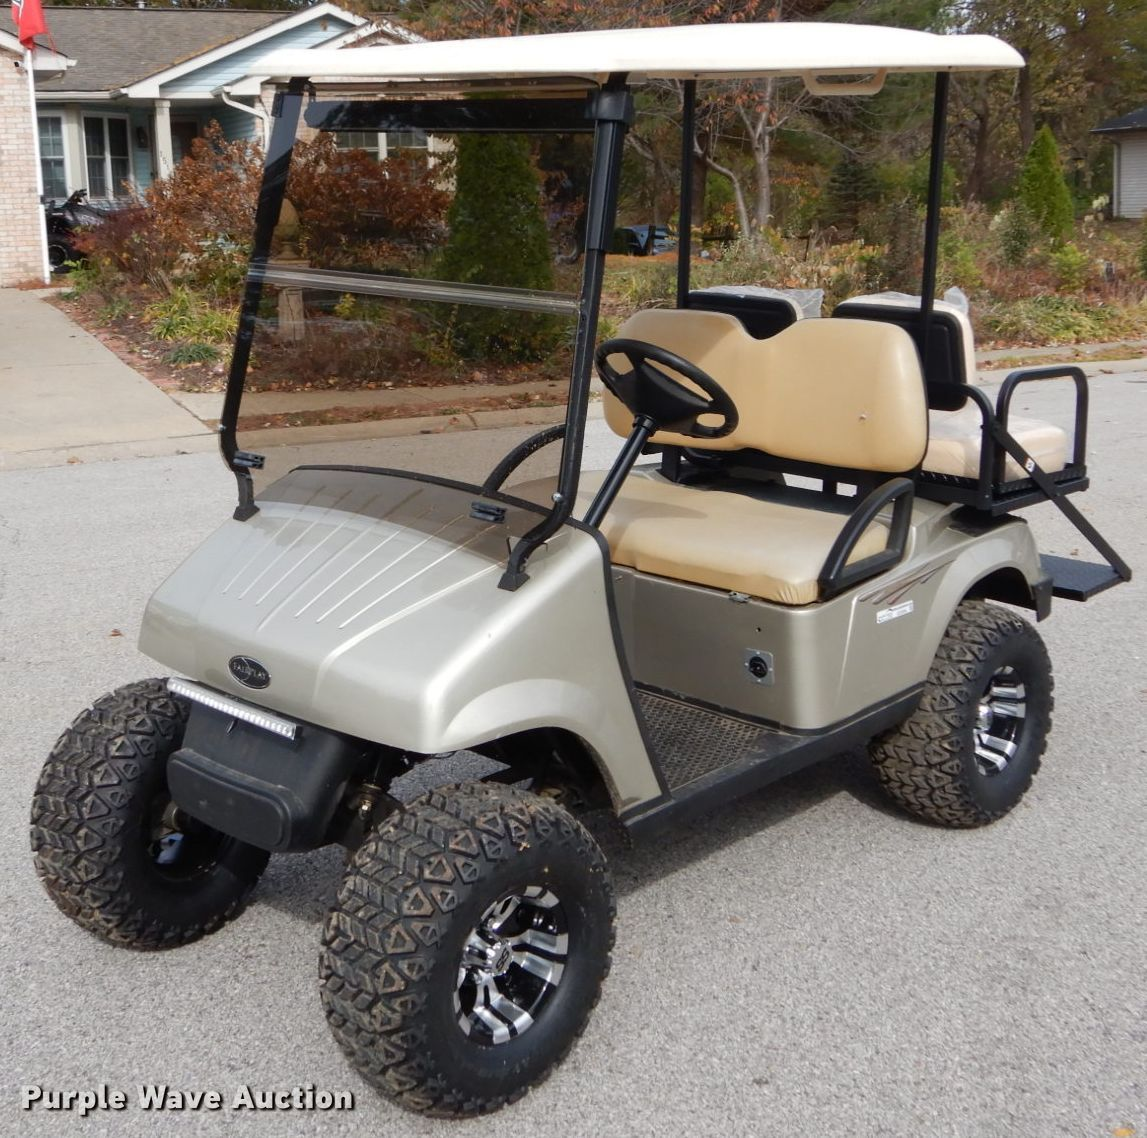 2015 Fair Play Golf Cart In O Fallon Il Item Gc9390 Sold Purple Wave